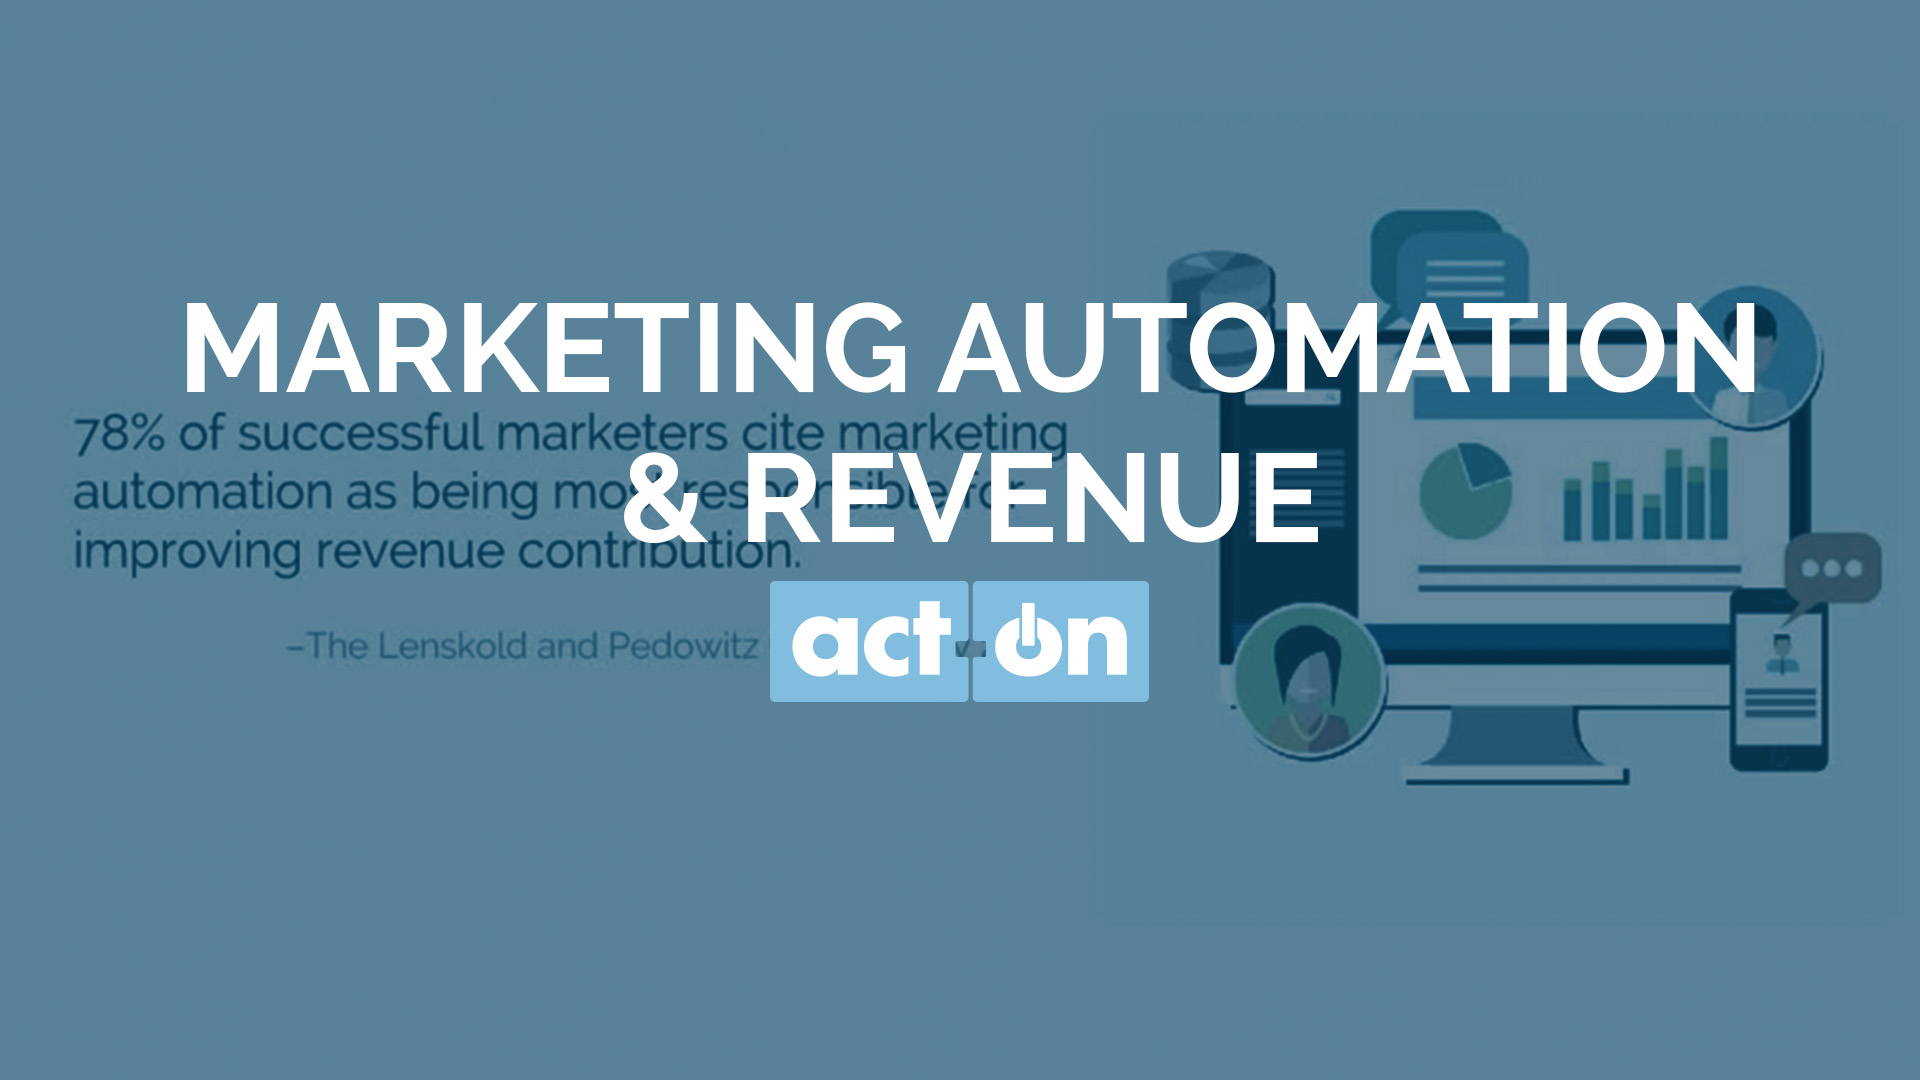 Marketing Automation and Revenue